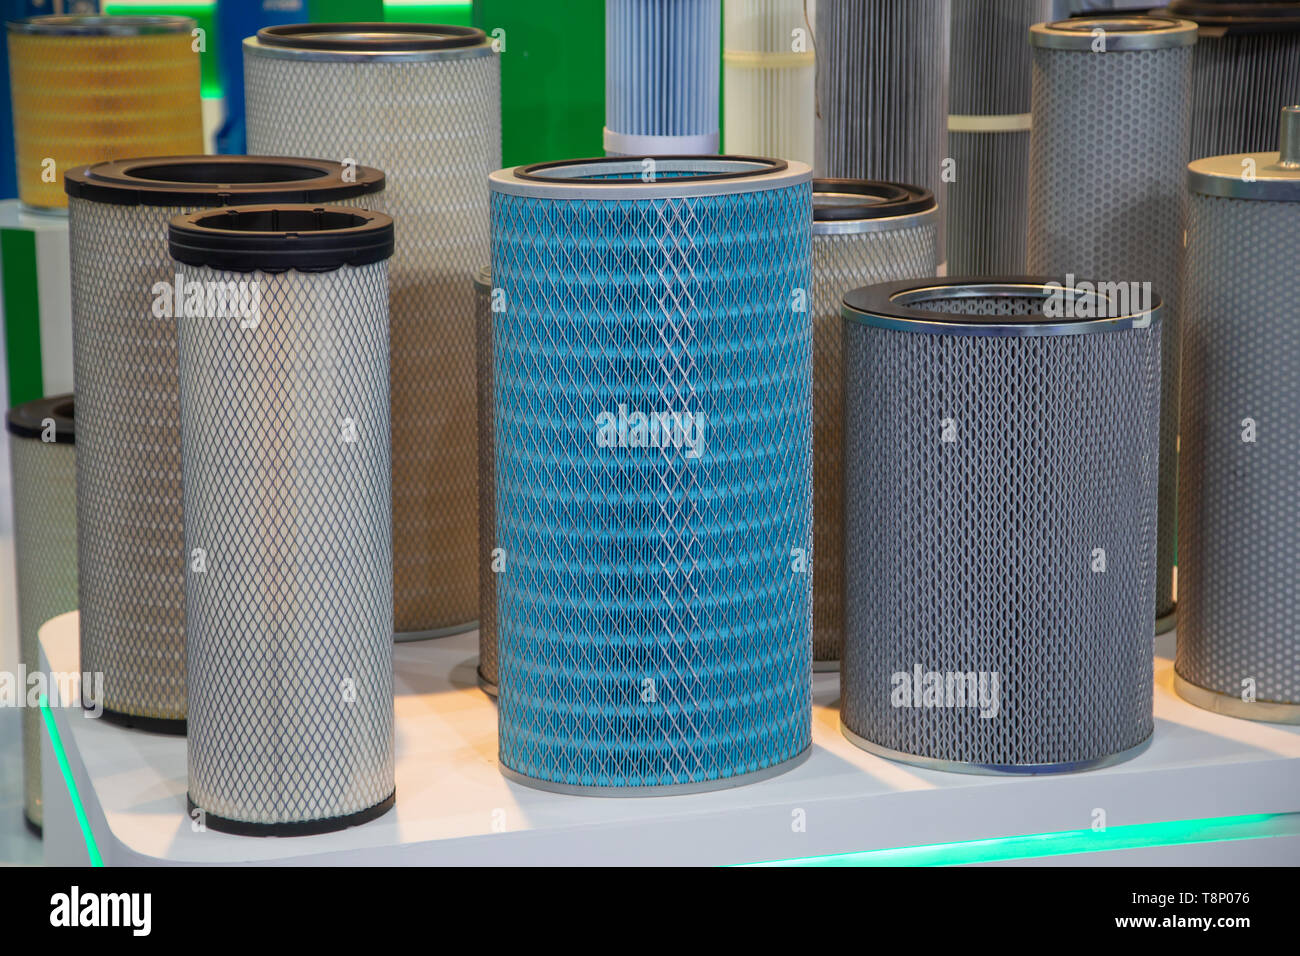 Metallfilter Industrie Filter Mesh Stockfotos Filter Mesh Bilder Alamy